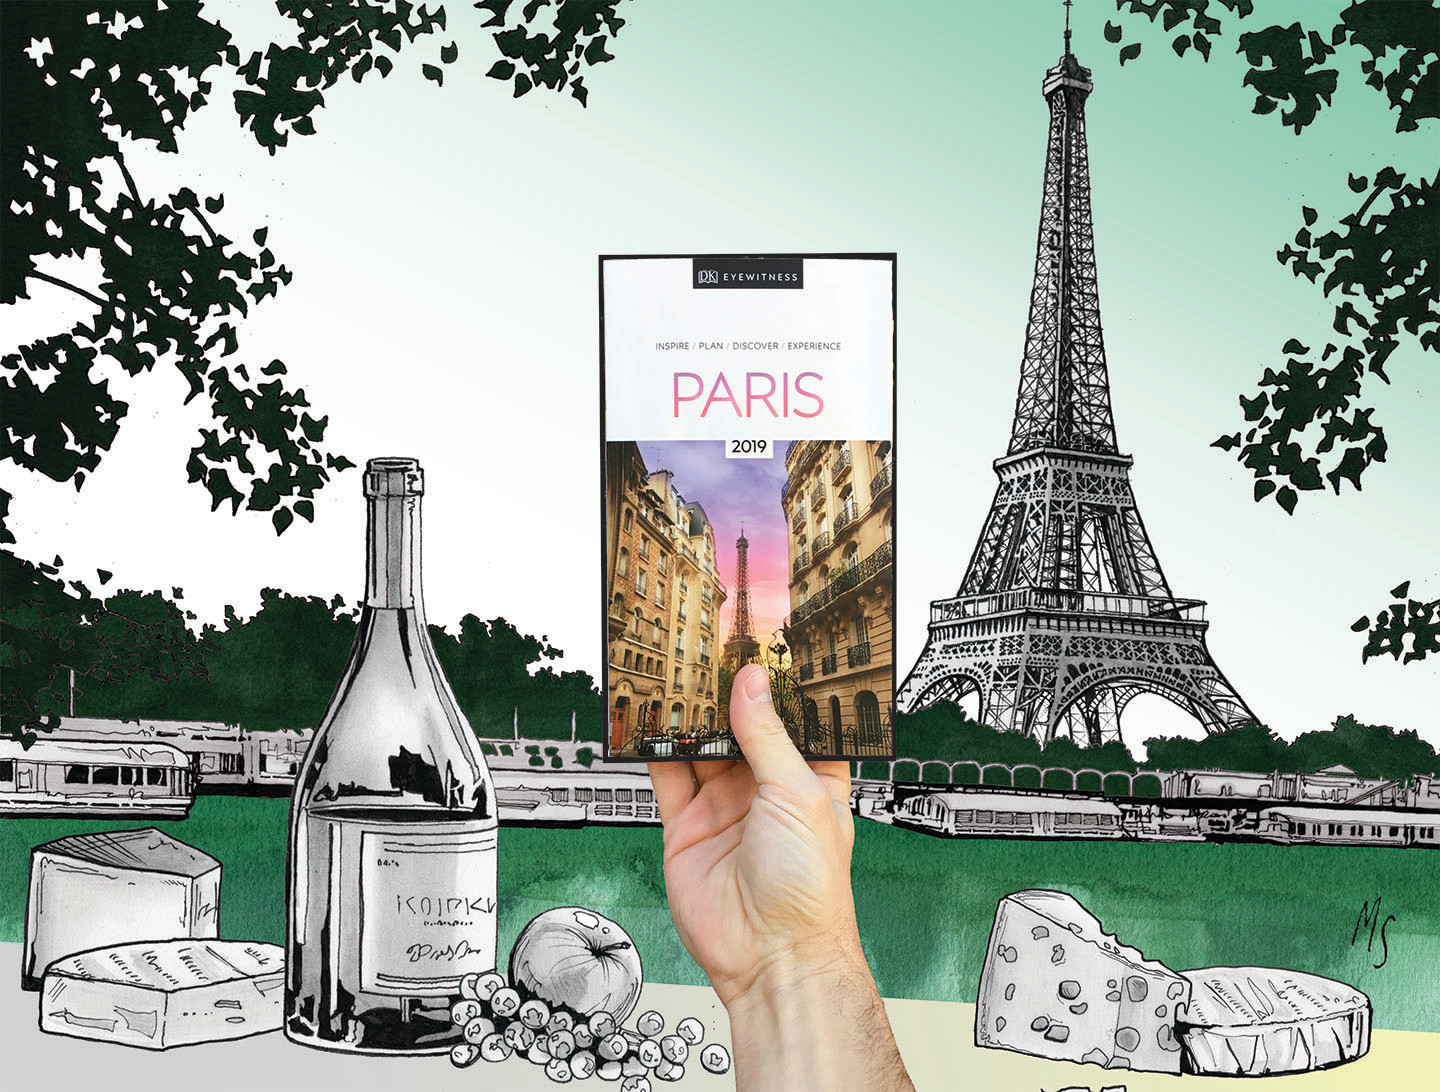 DK Eye Witness Travel Guide: Paris. illustration for Indigo Plum Rewards Contest